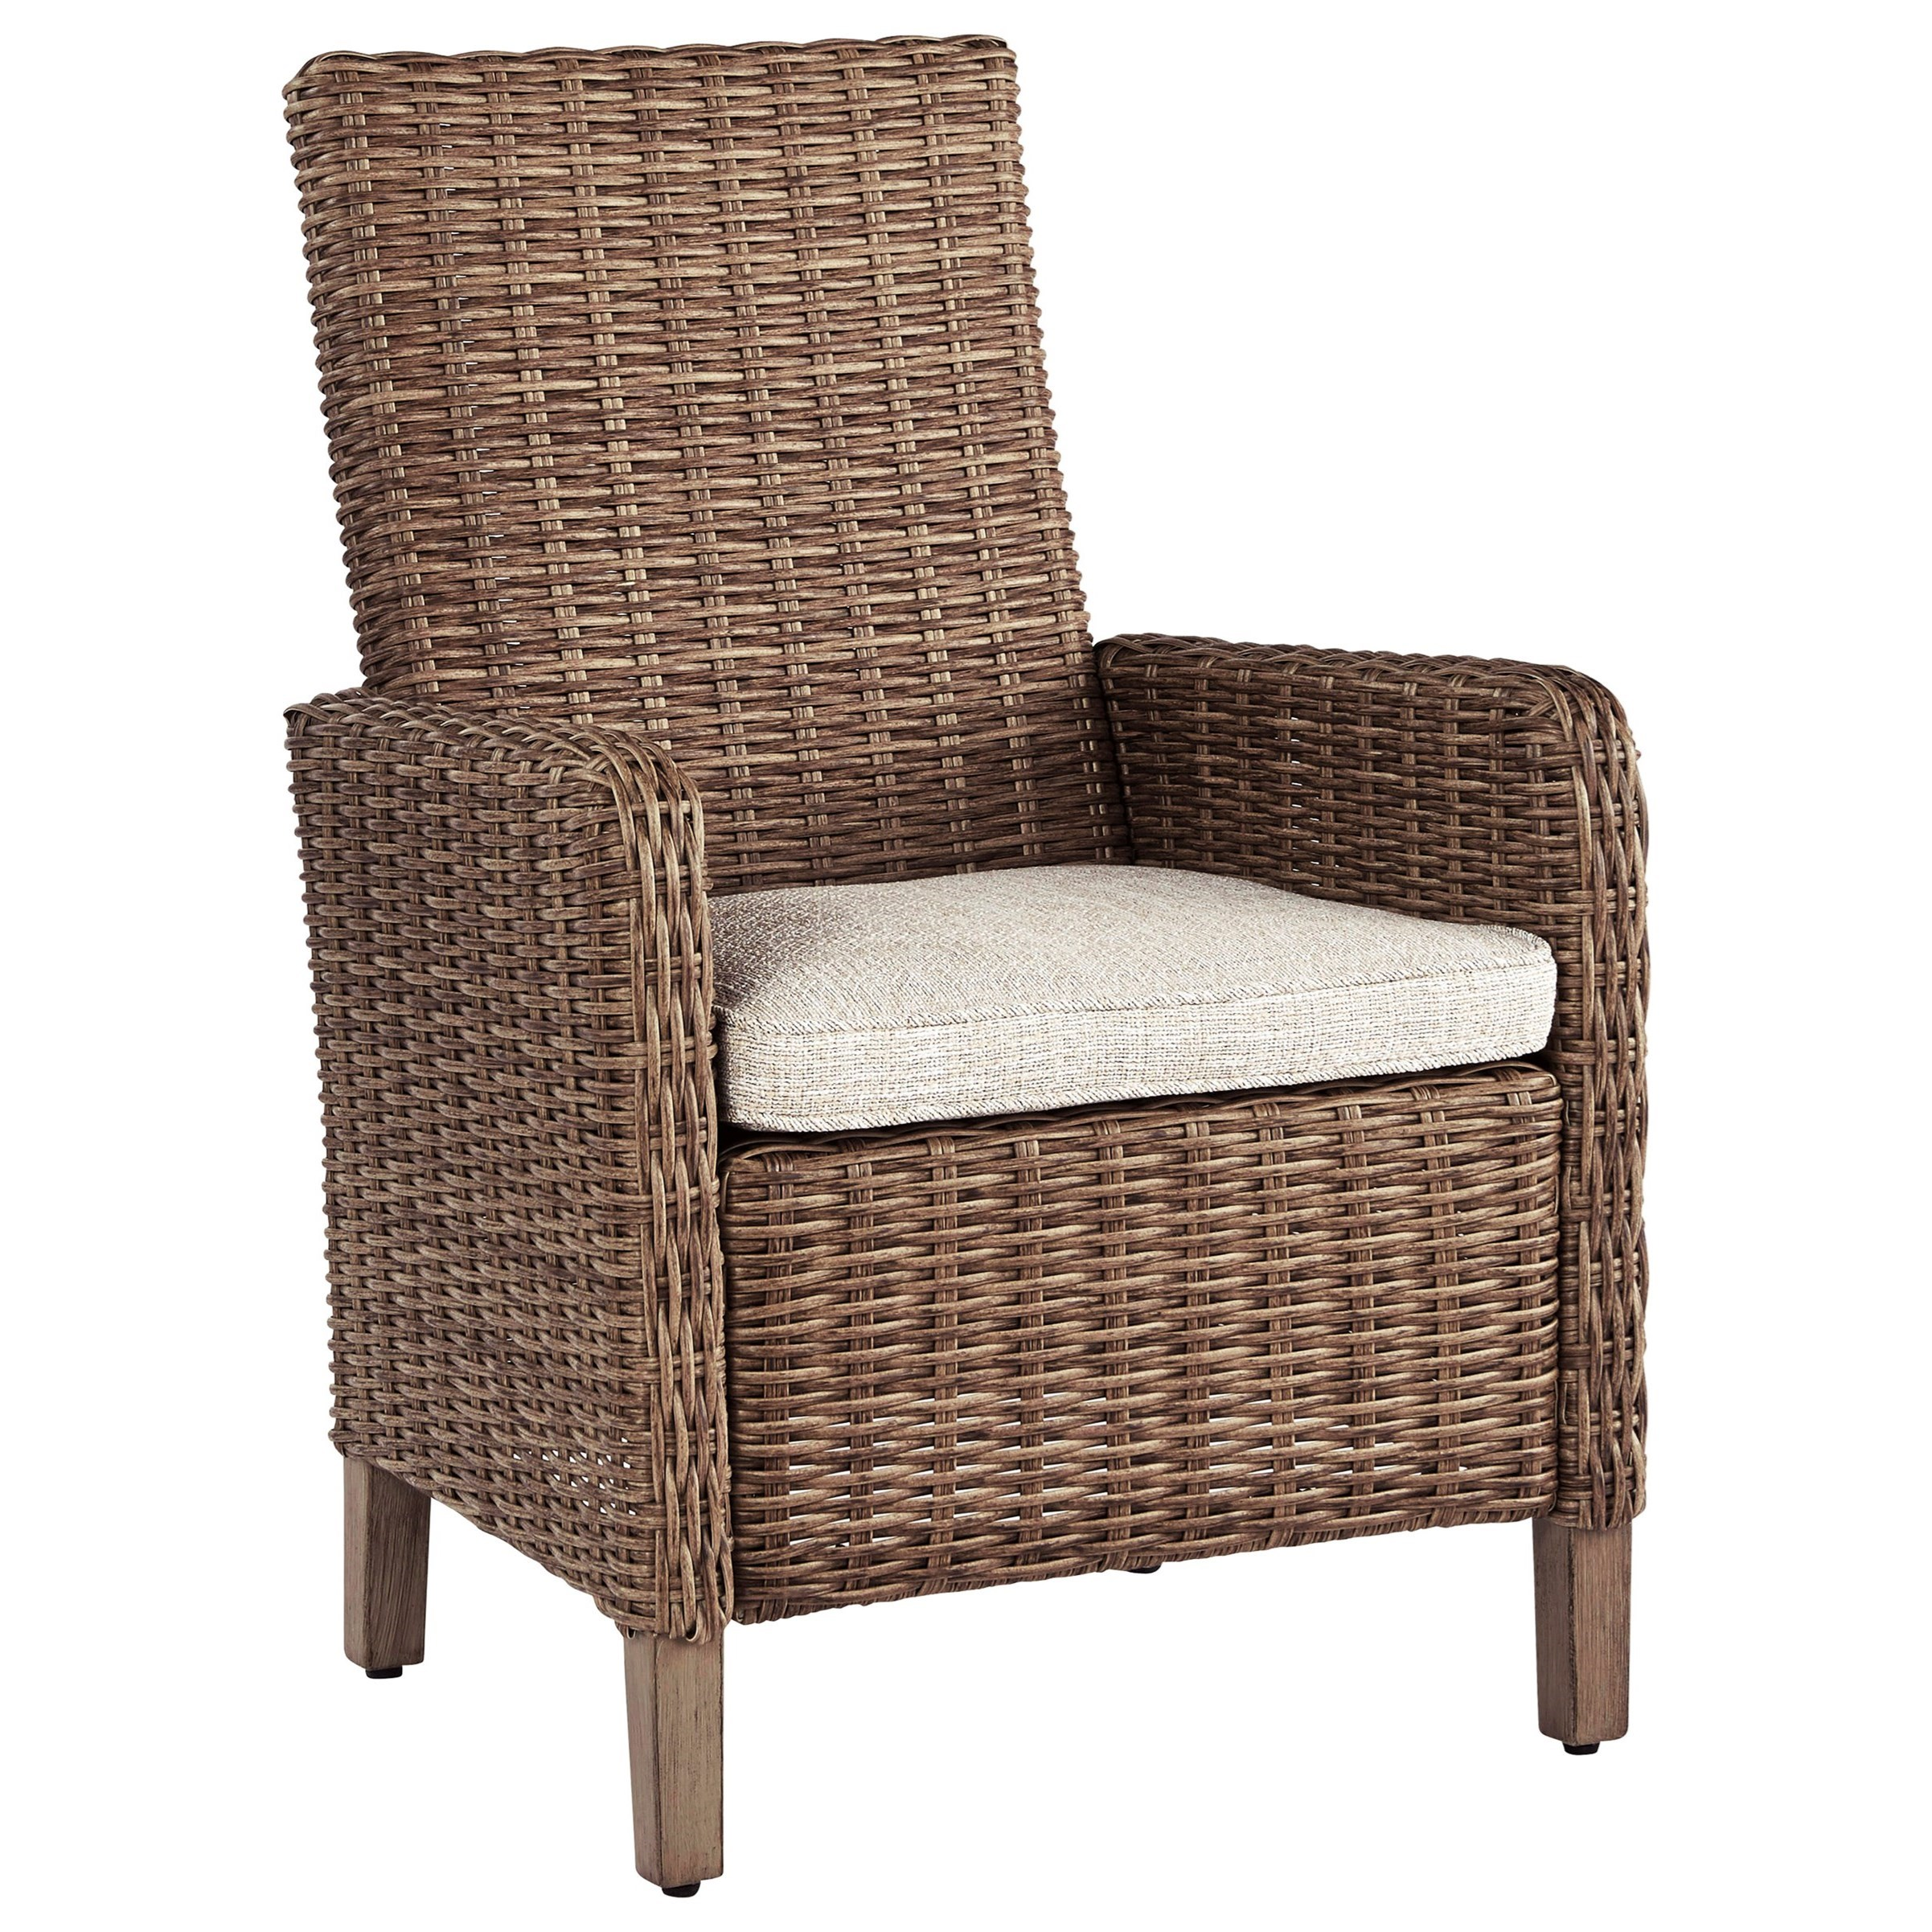 Beachcroft Set of 2 Arm Chairs with Cushion by Signature Design by Ashley at Northeast Factory Direct